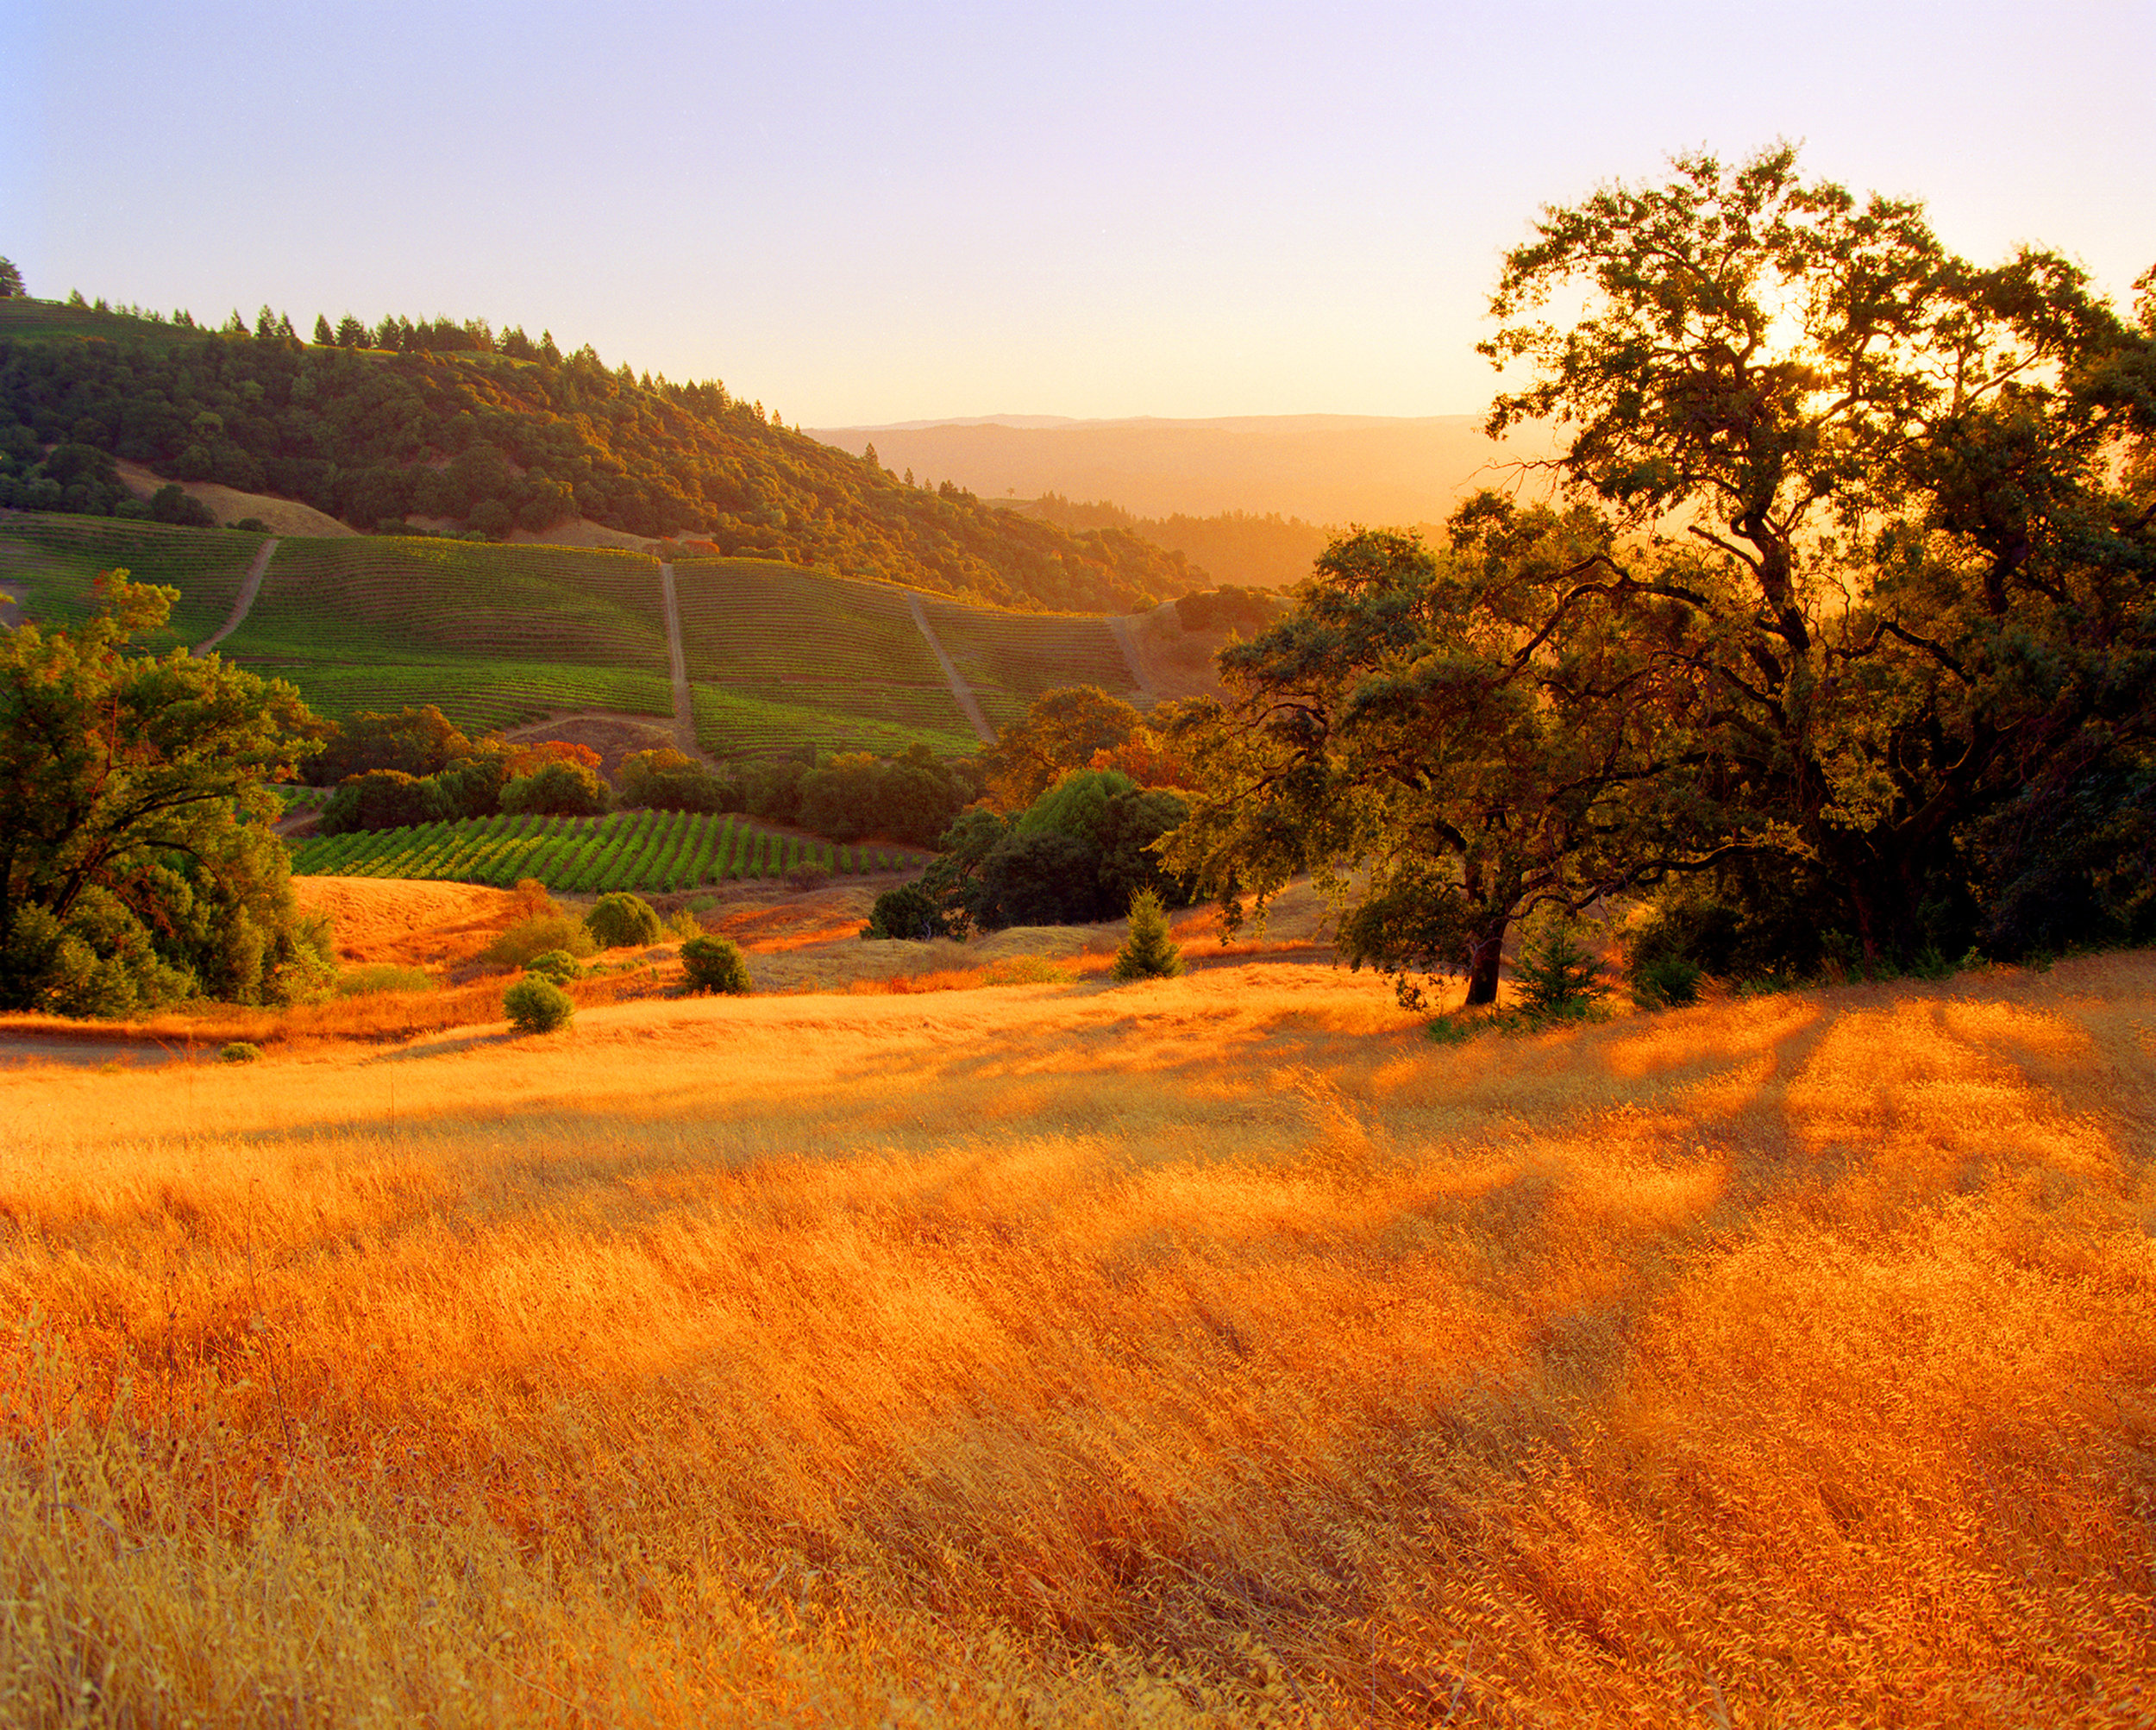 Sonoma County, my home.